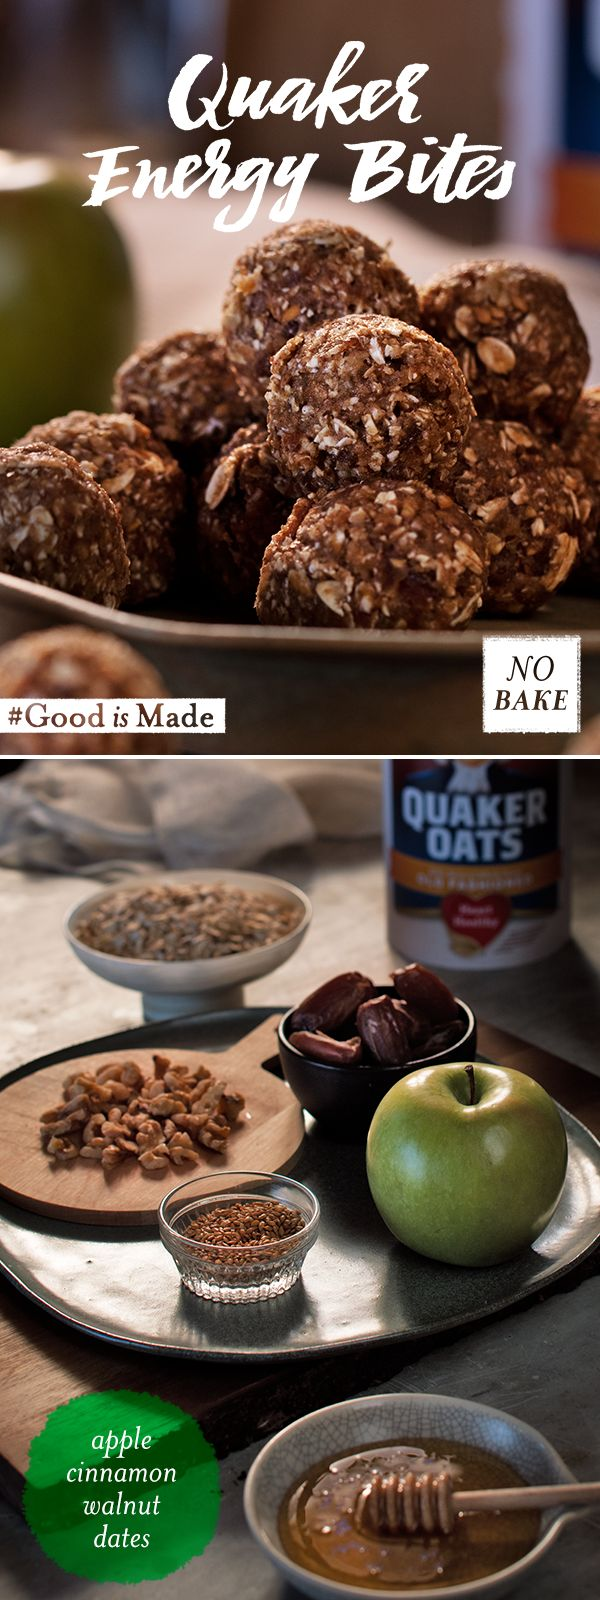 An easy, no-bake snack that's full of flavor. Try Quaker®  Apple Cinnamon Walnut Energy Bites with just a few simple ingredients, like oats, cinnamon, apples and walnuts, for a quick pick-me-up or even just for fun.